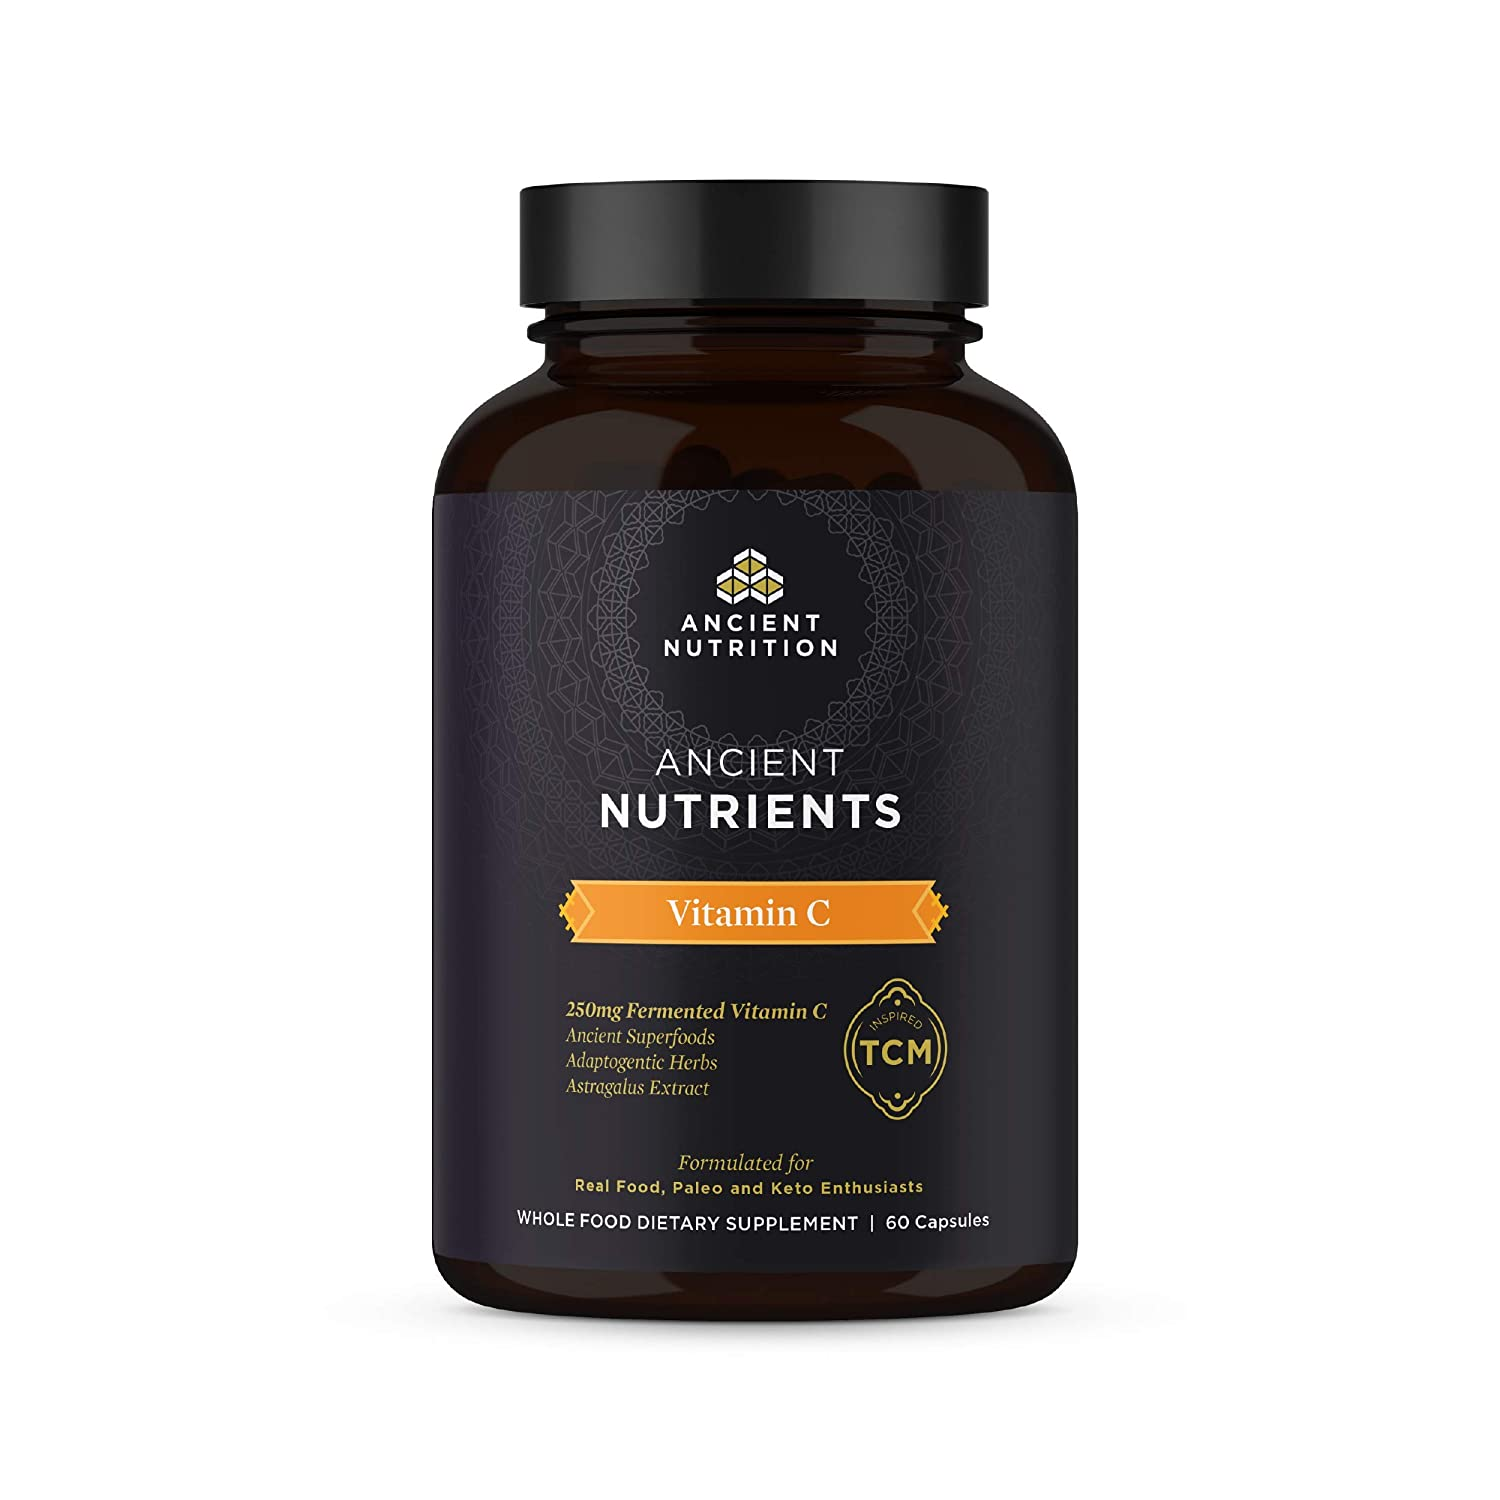 Ancient Nutrition, Ancient Nutrients Vitamin C - 250mg Fermented Vitamin C, Adaptogenic Herbs, Enzyme Activated, Paleo & Keto Friendly, 60 Capsules